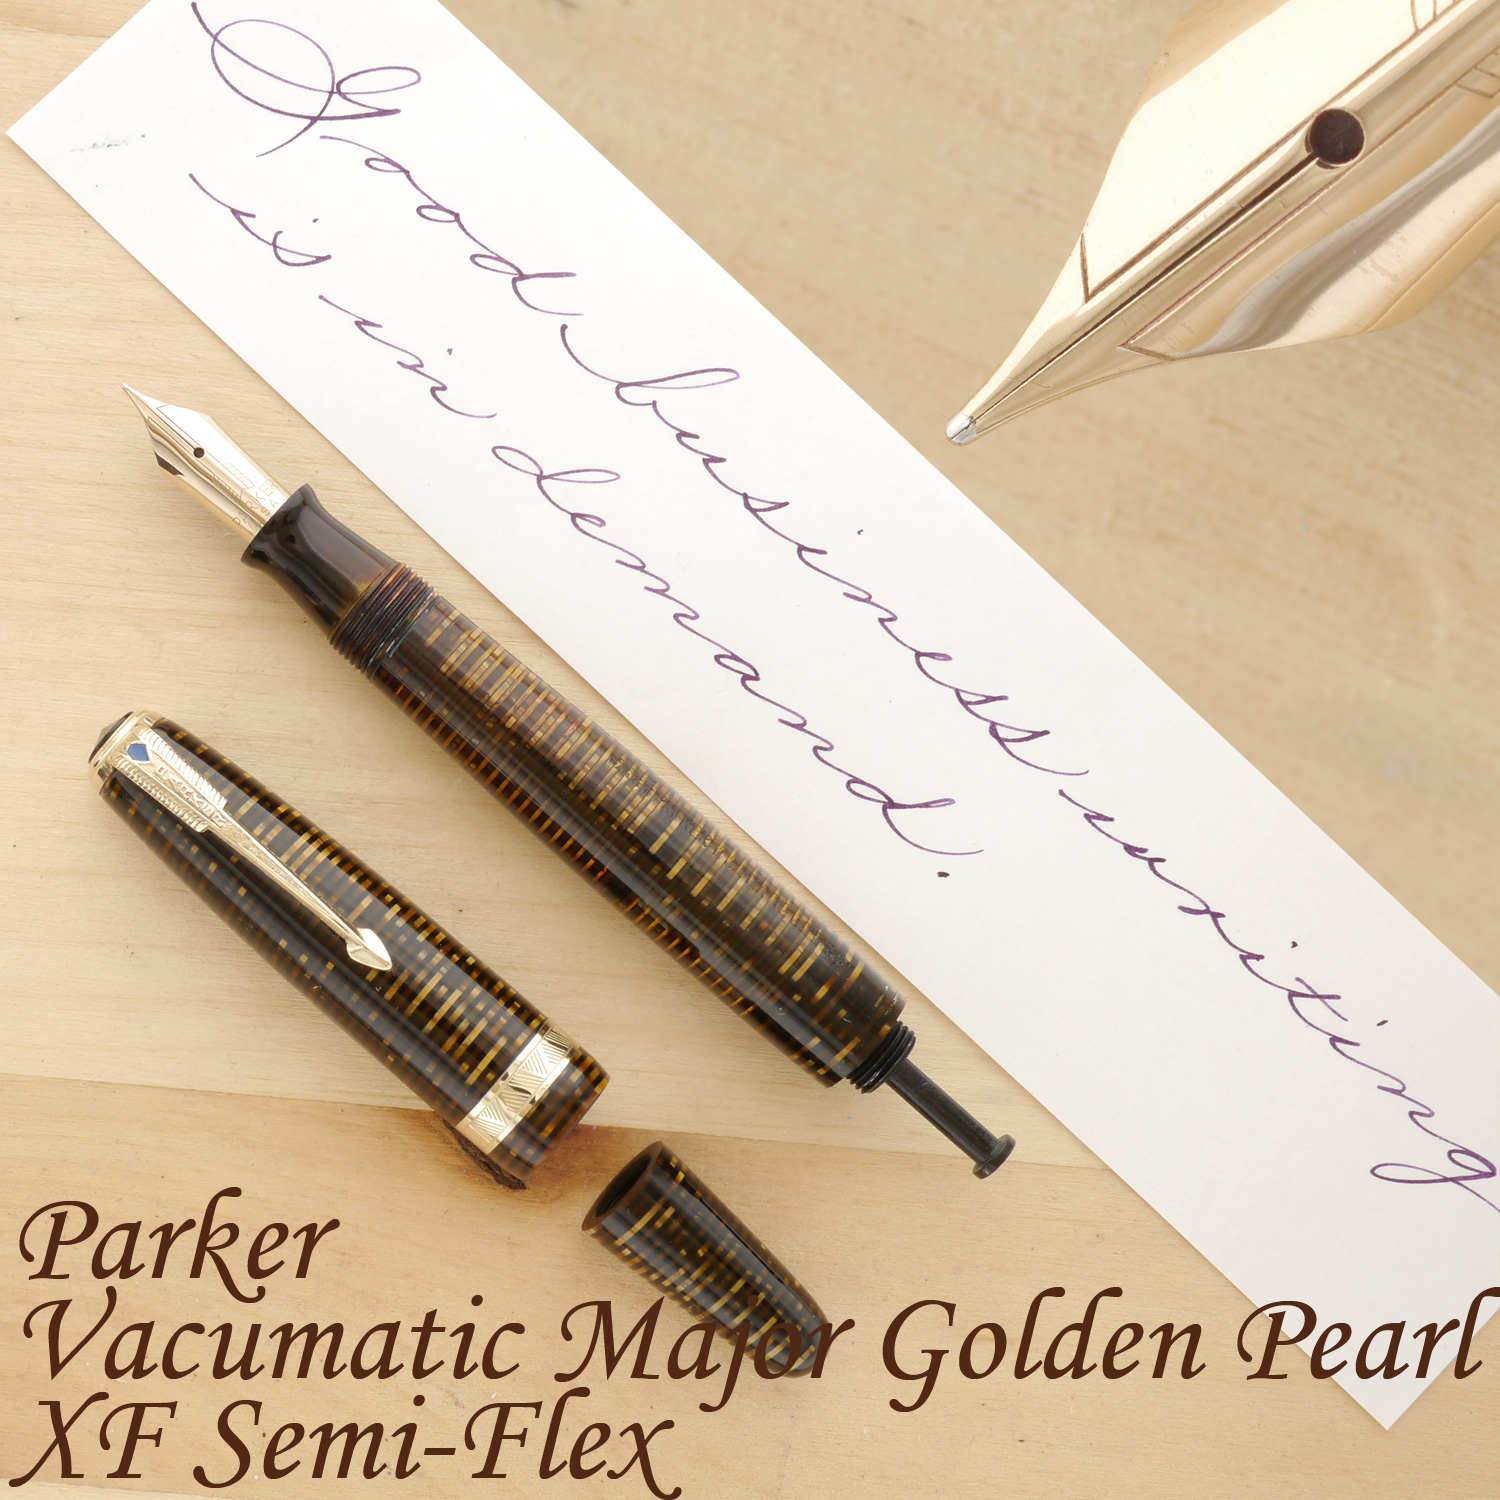 Parker Vacumatic Major, Golden Pearl, XF Semi-Flex, uncapped, with the blind cap removed